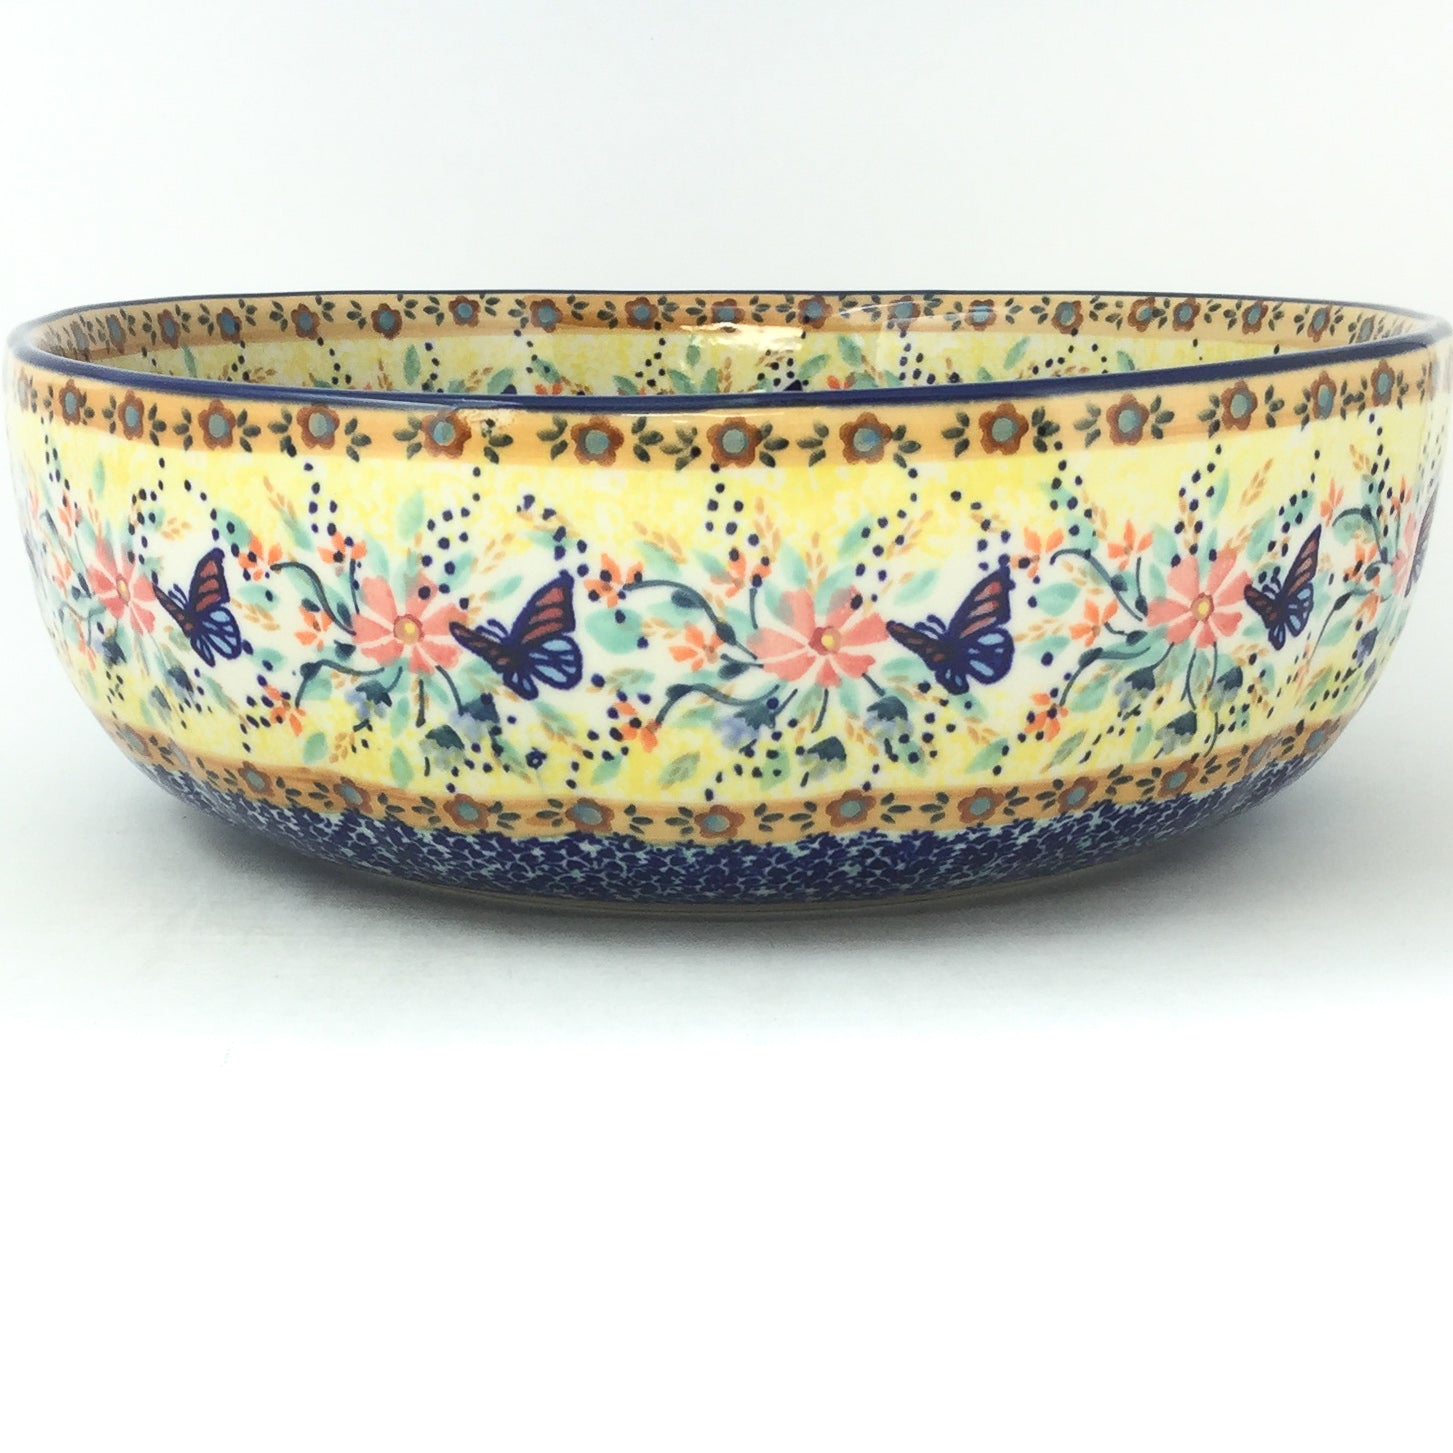 Family Shallow Bowl in Butterfly Meadow